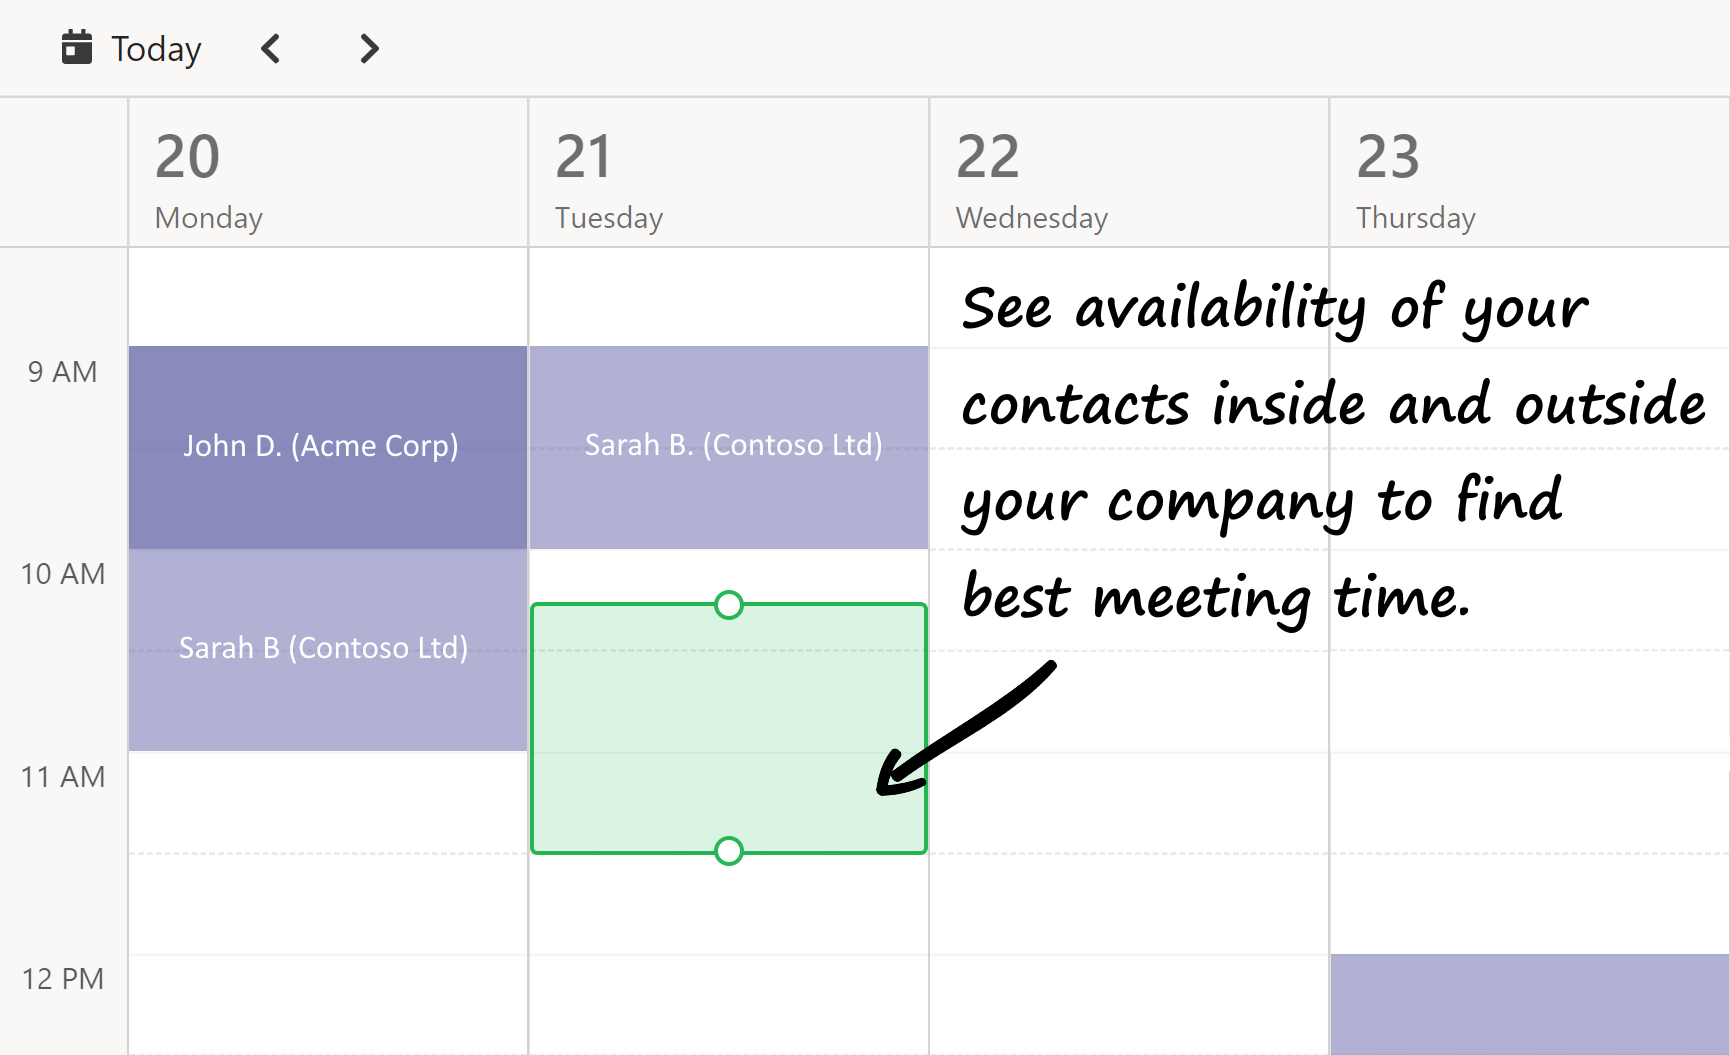 See availability of your colleagues inside and outside your company to find best meeting time.